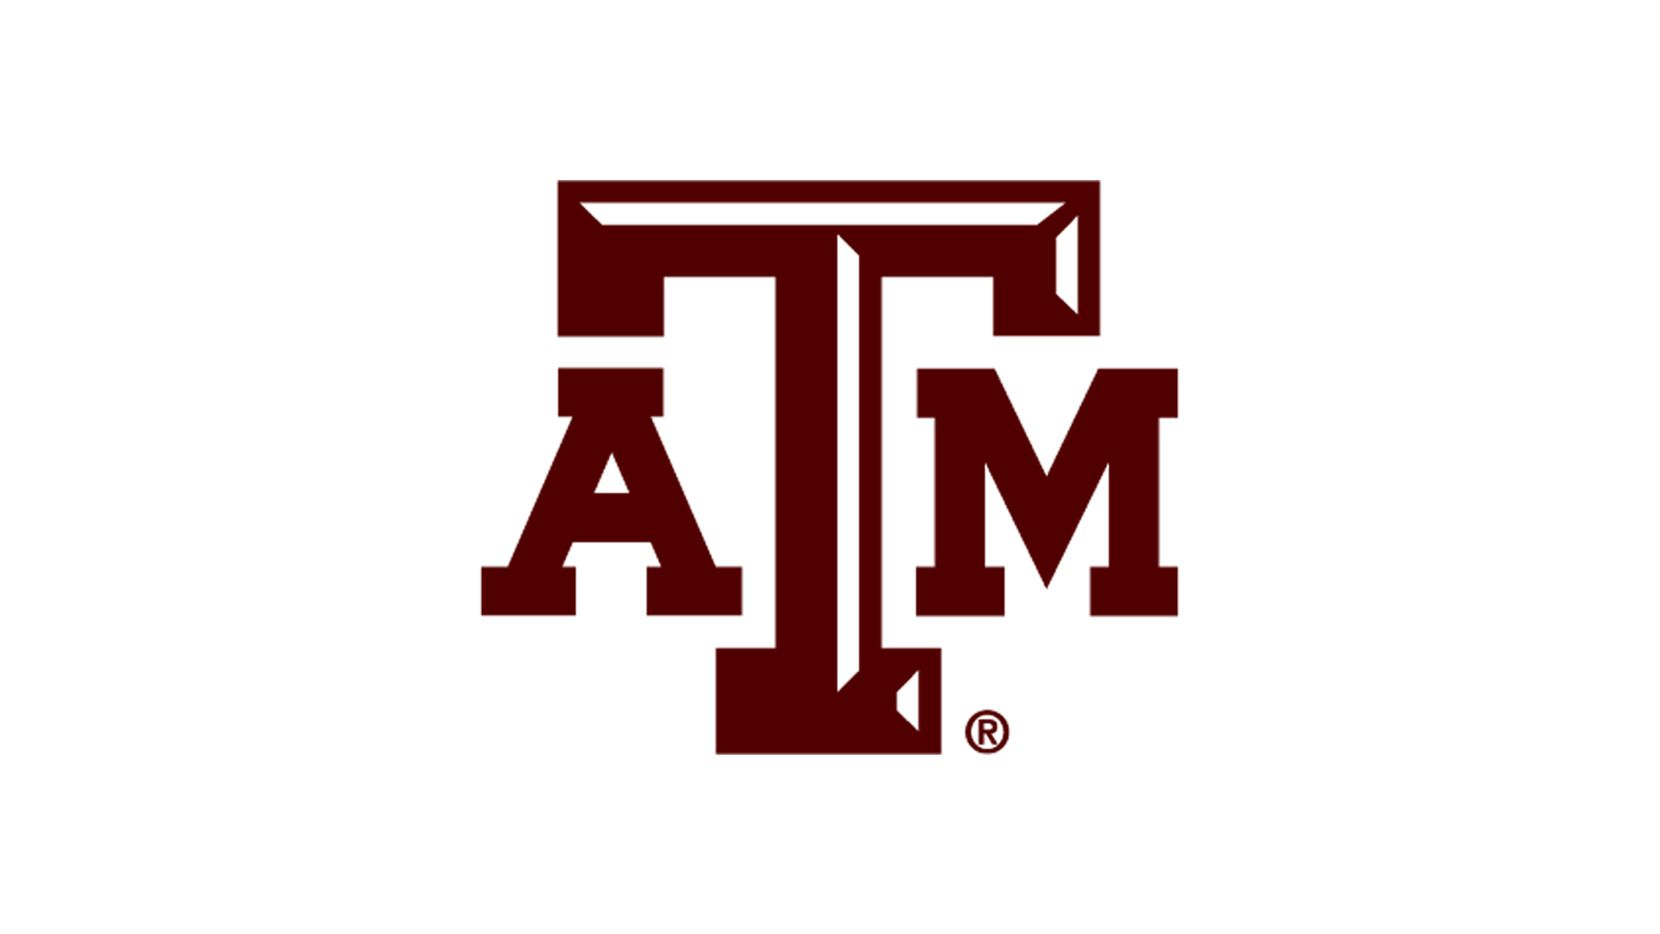 Texas A&M Aggies logo.